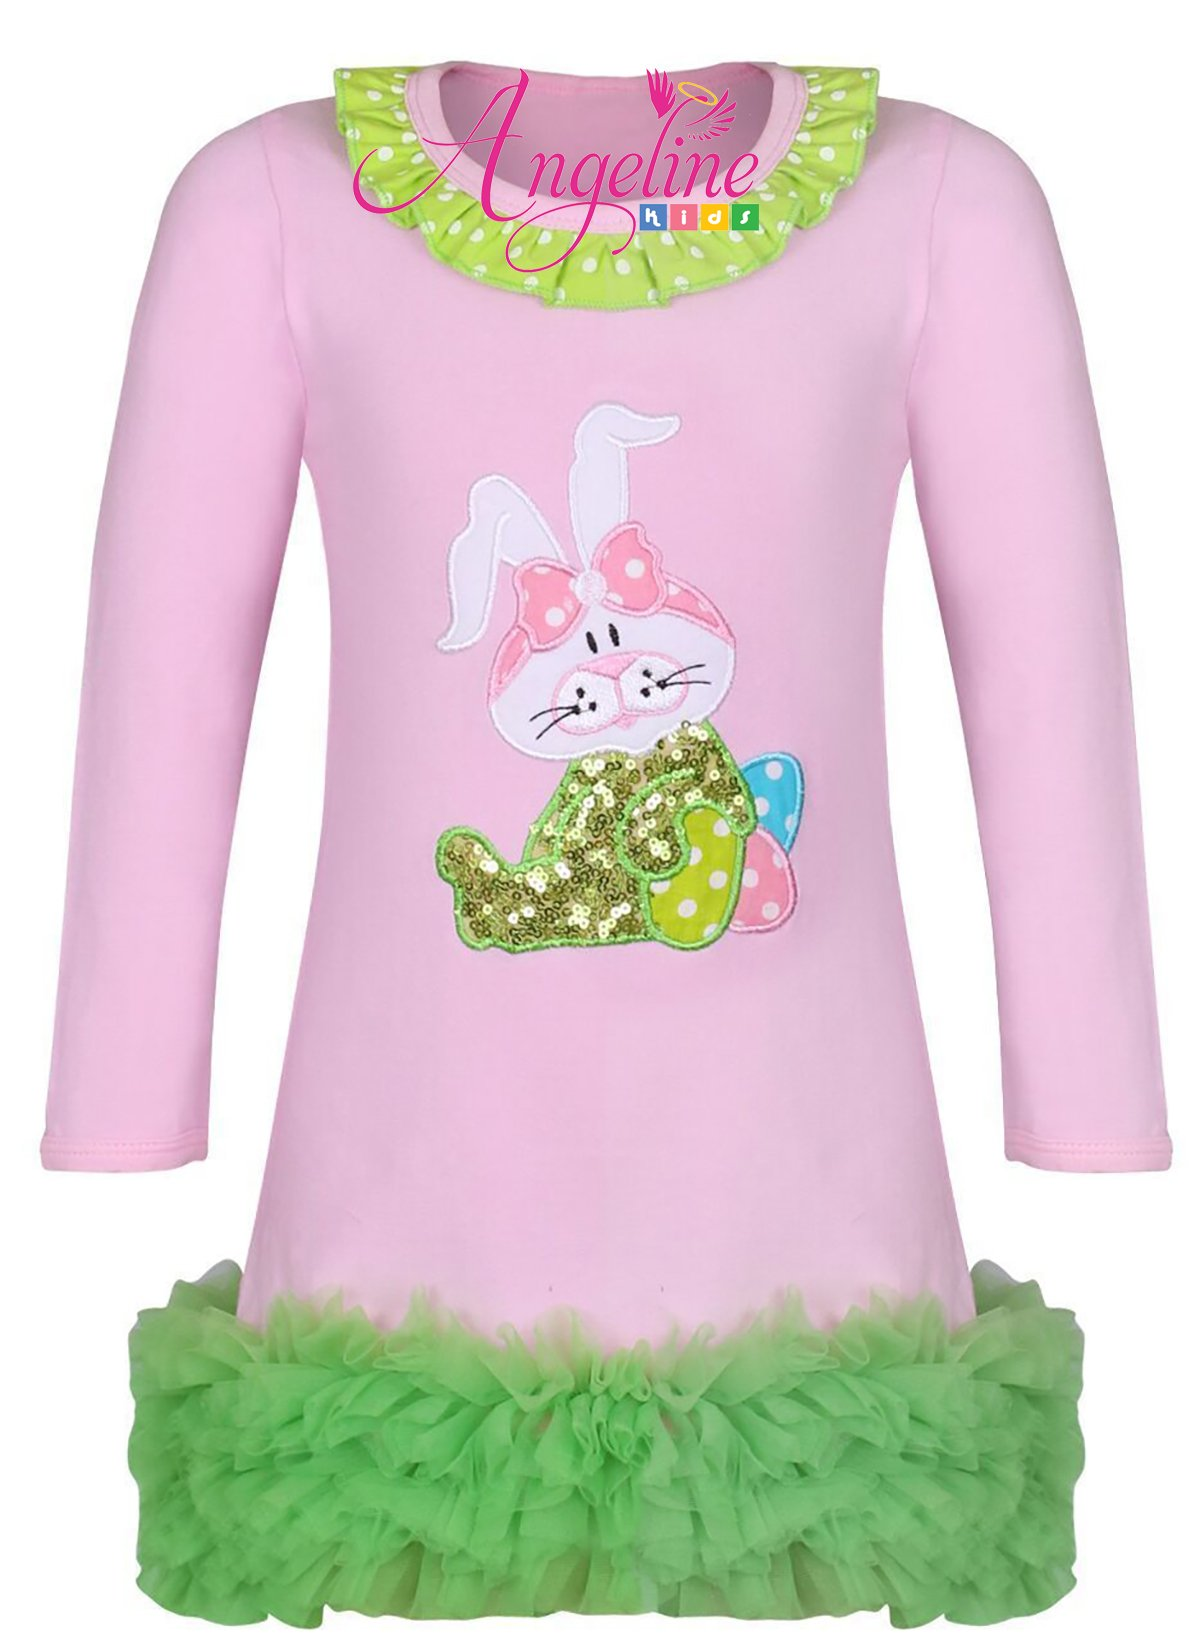 Angeline Boutique Clothing Girls Easter Bunny Ruffles Dress Pink/Green 3T/S